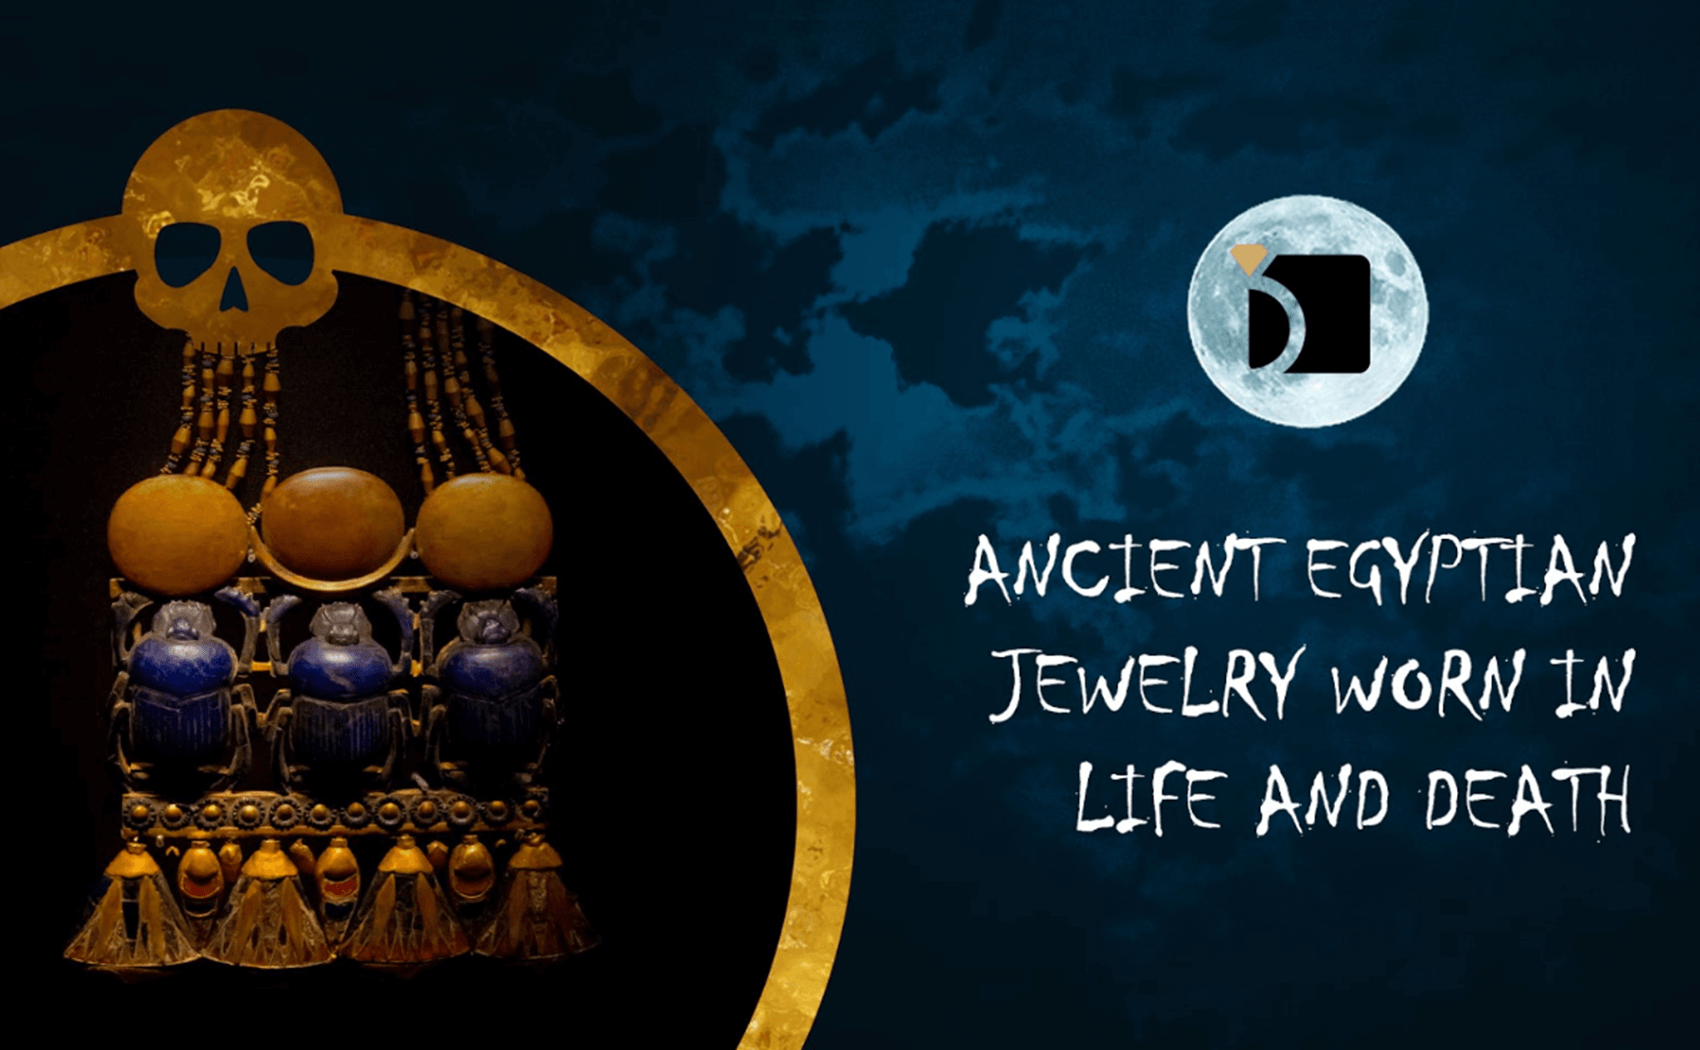 Ancient Egyptian Jewelry Worn in Life and Death